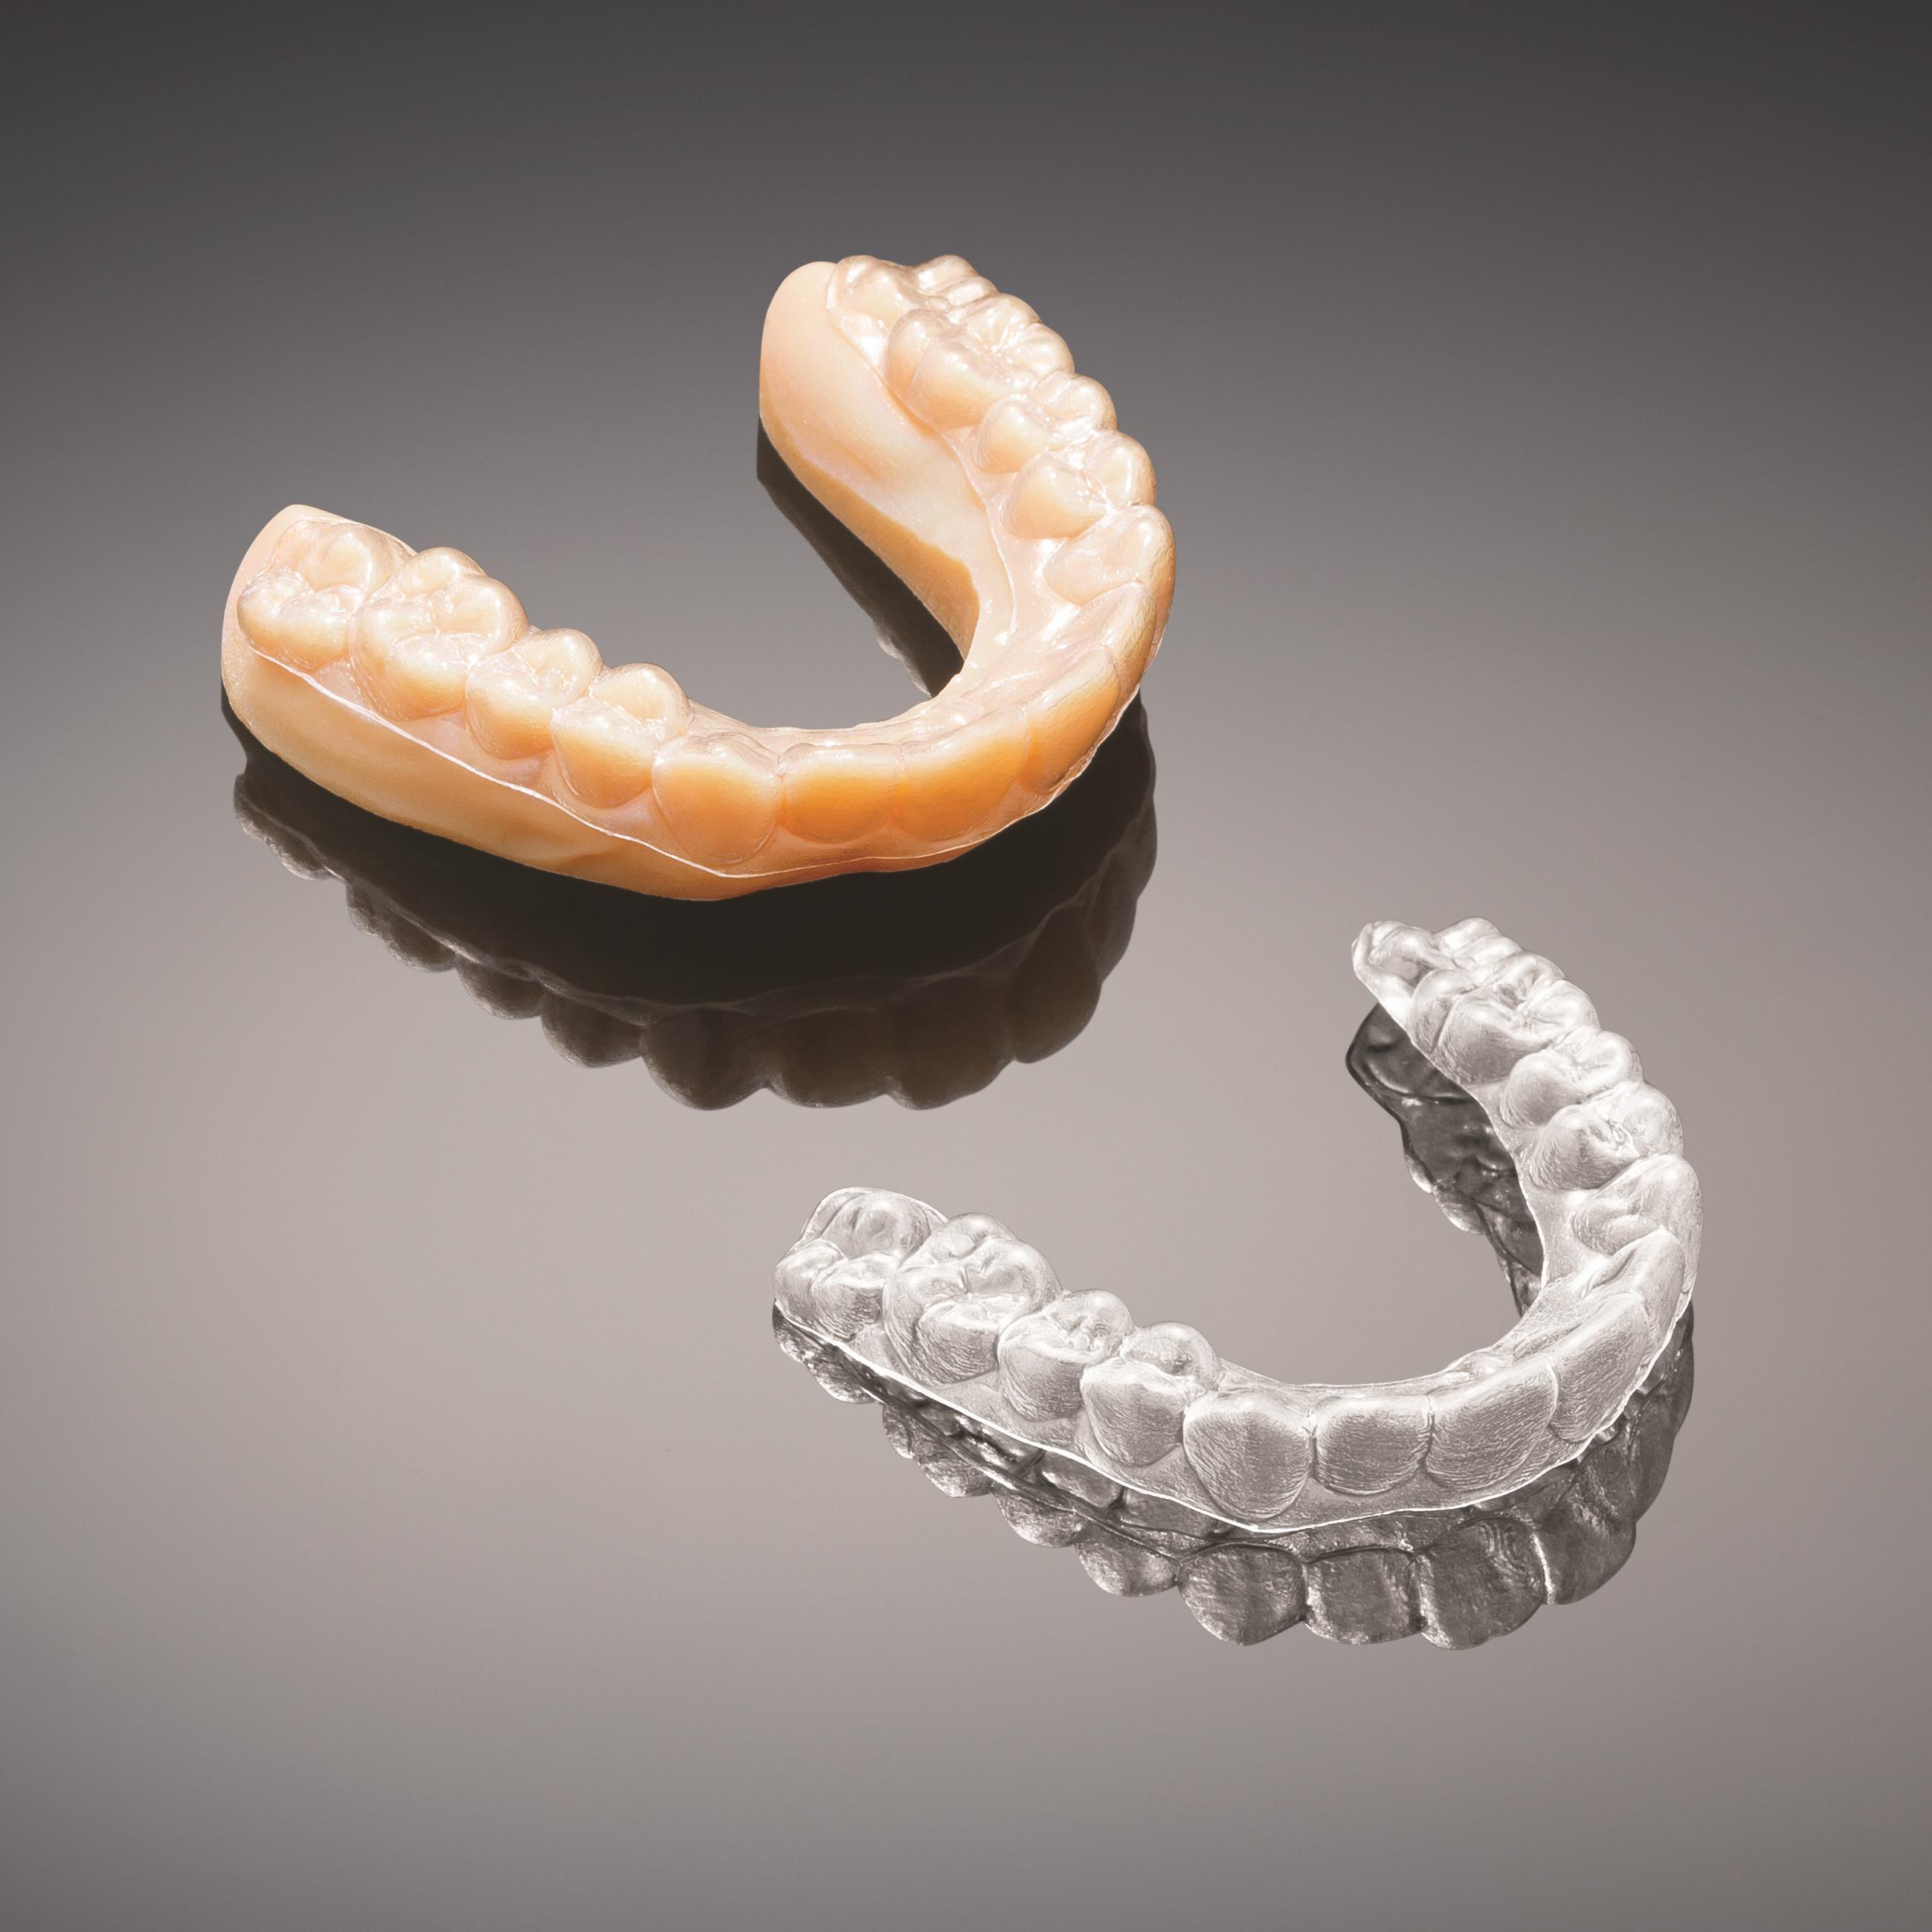 3D printed mold for clear aligner (upper left) produced on the Stratasys J700 Dental 3D Printing Solution, and resulting clear aligner (lower right) (Photo: Stratasys Ltd.)